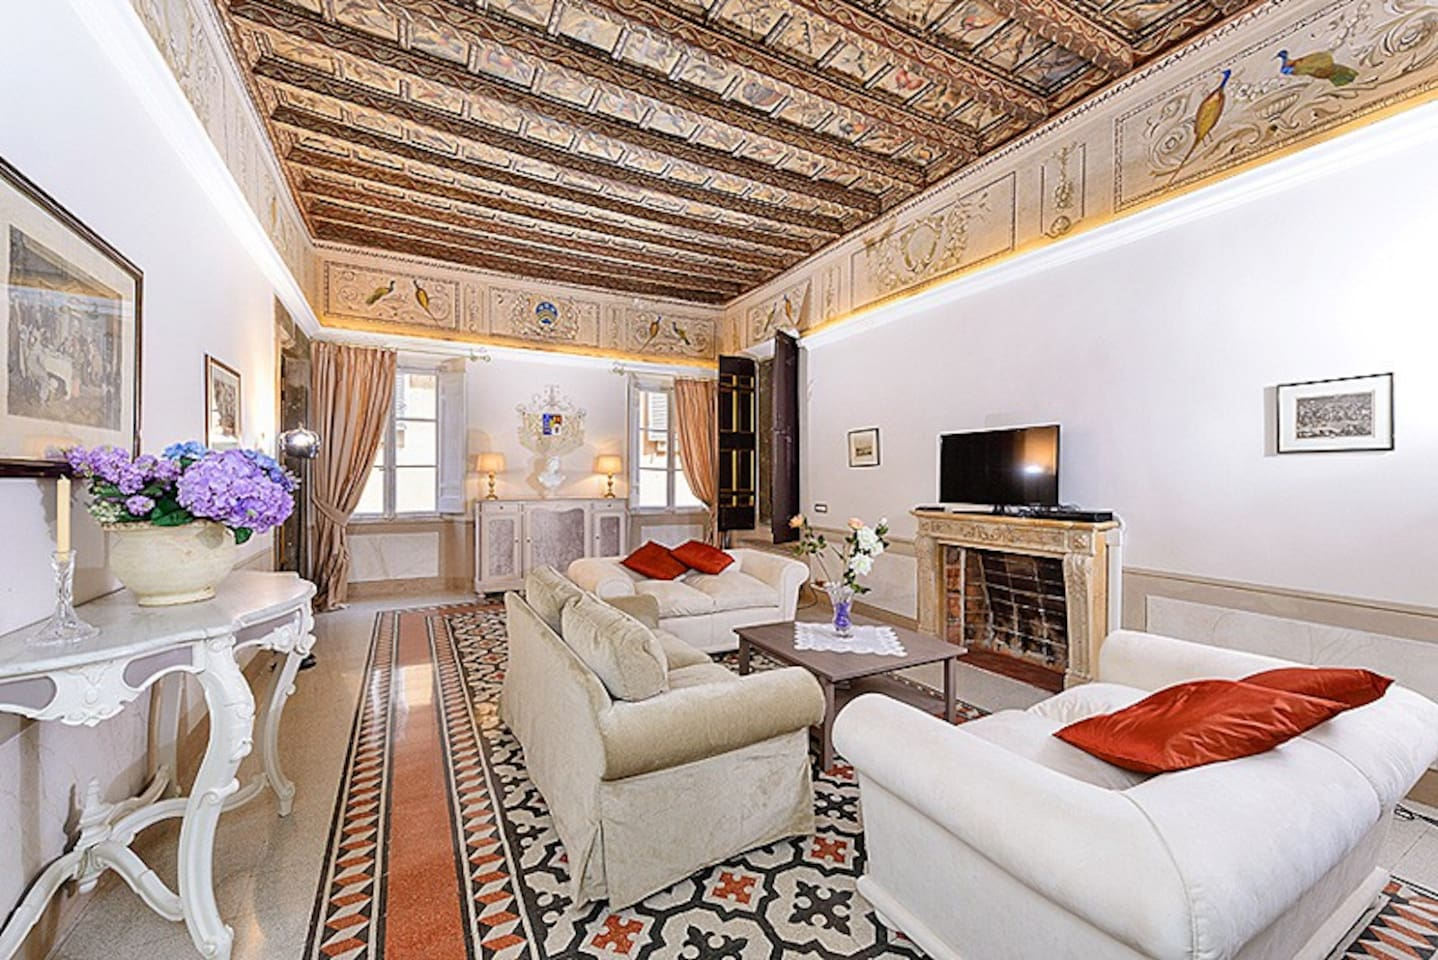 Old Rome 4BR 3BA panoramic terrace - Apartments for Rent in Rome